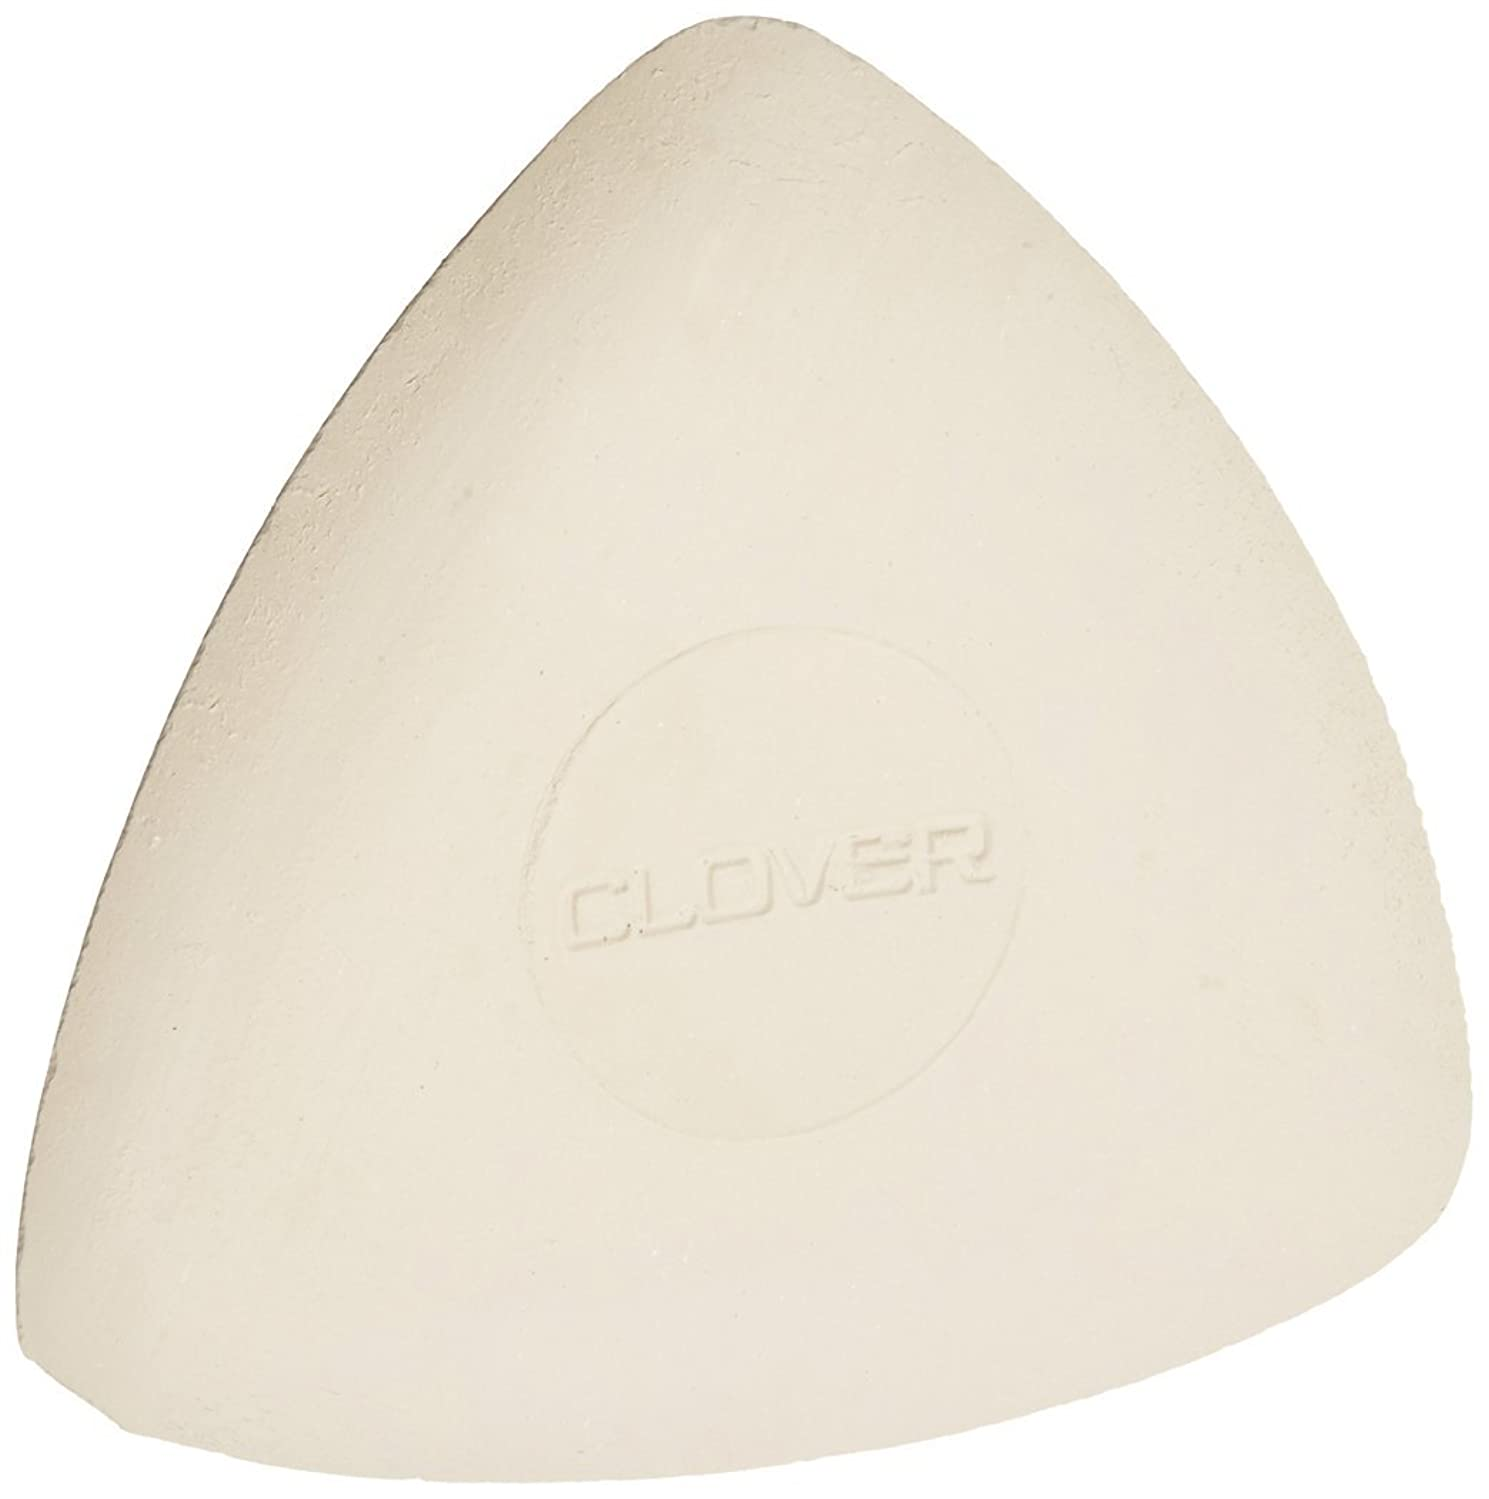 Clover 432/W Triangle Tailors Chalk, White